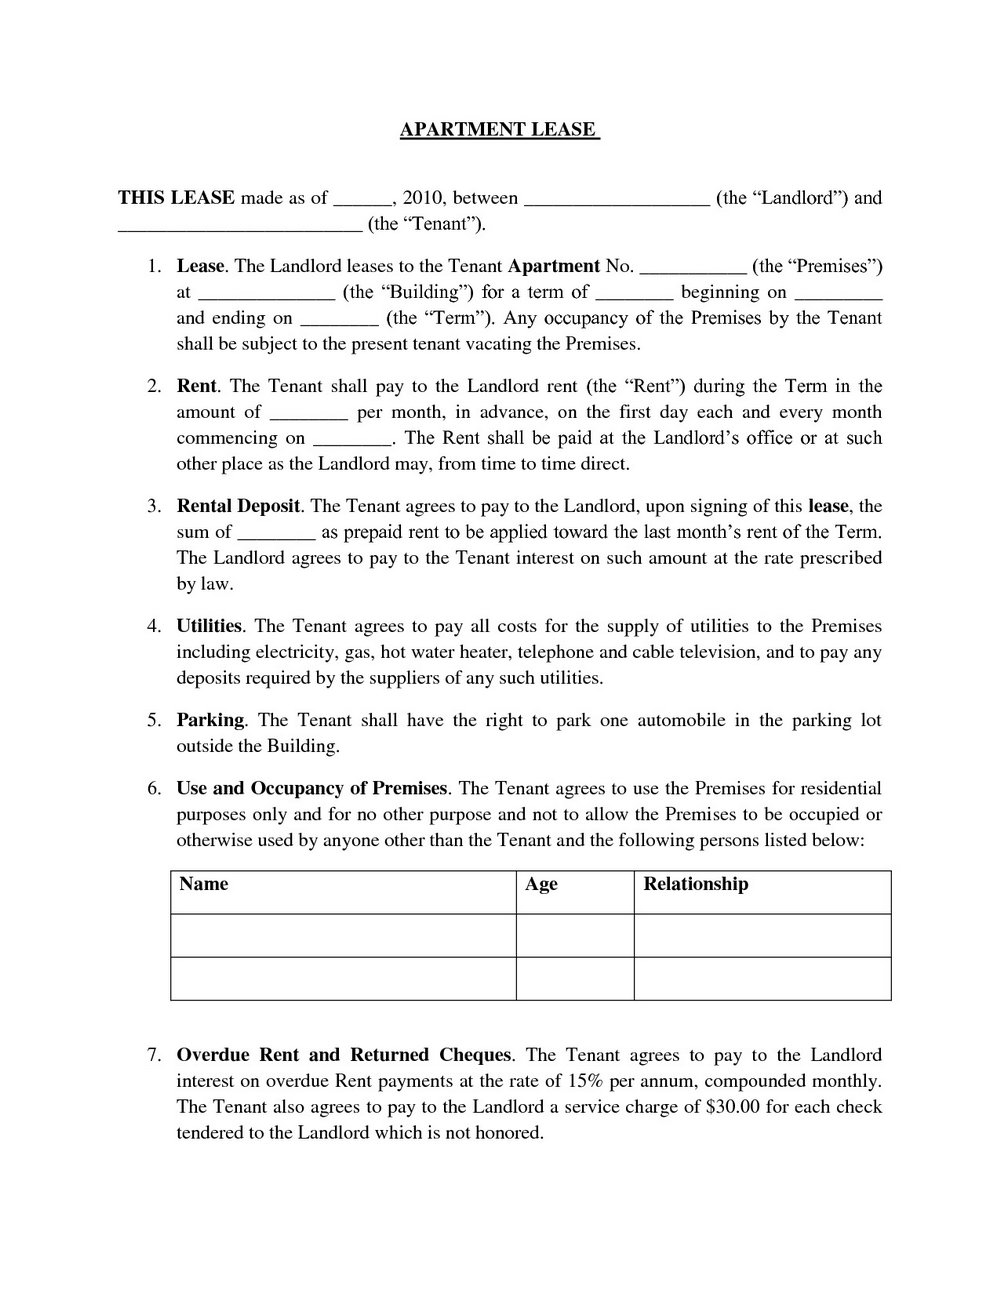 Standard Form Of Store Lease New York